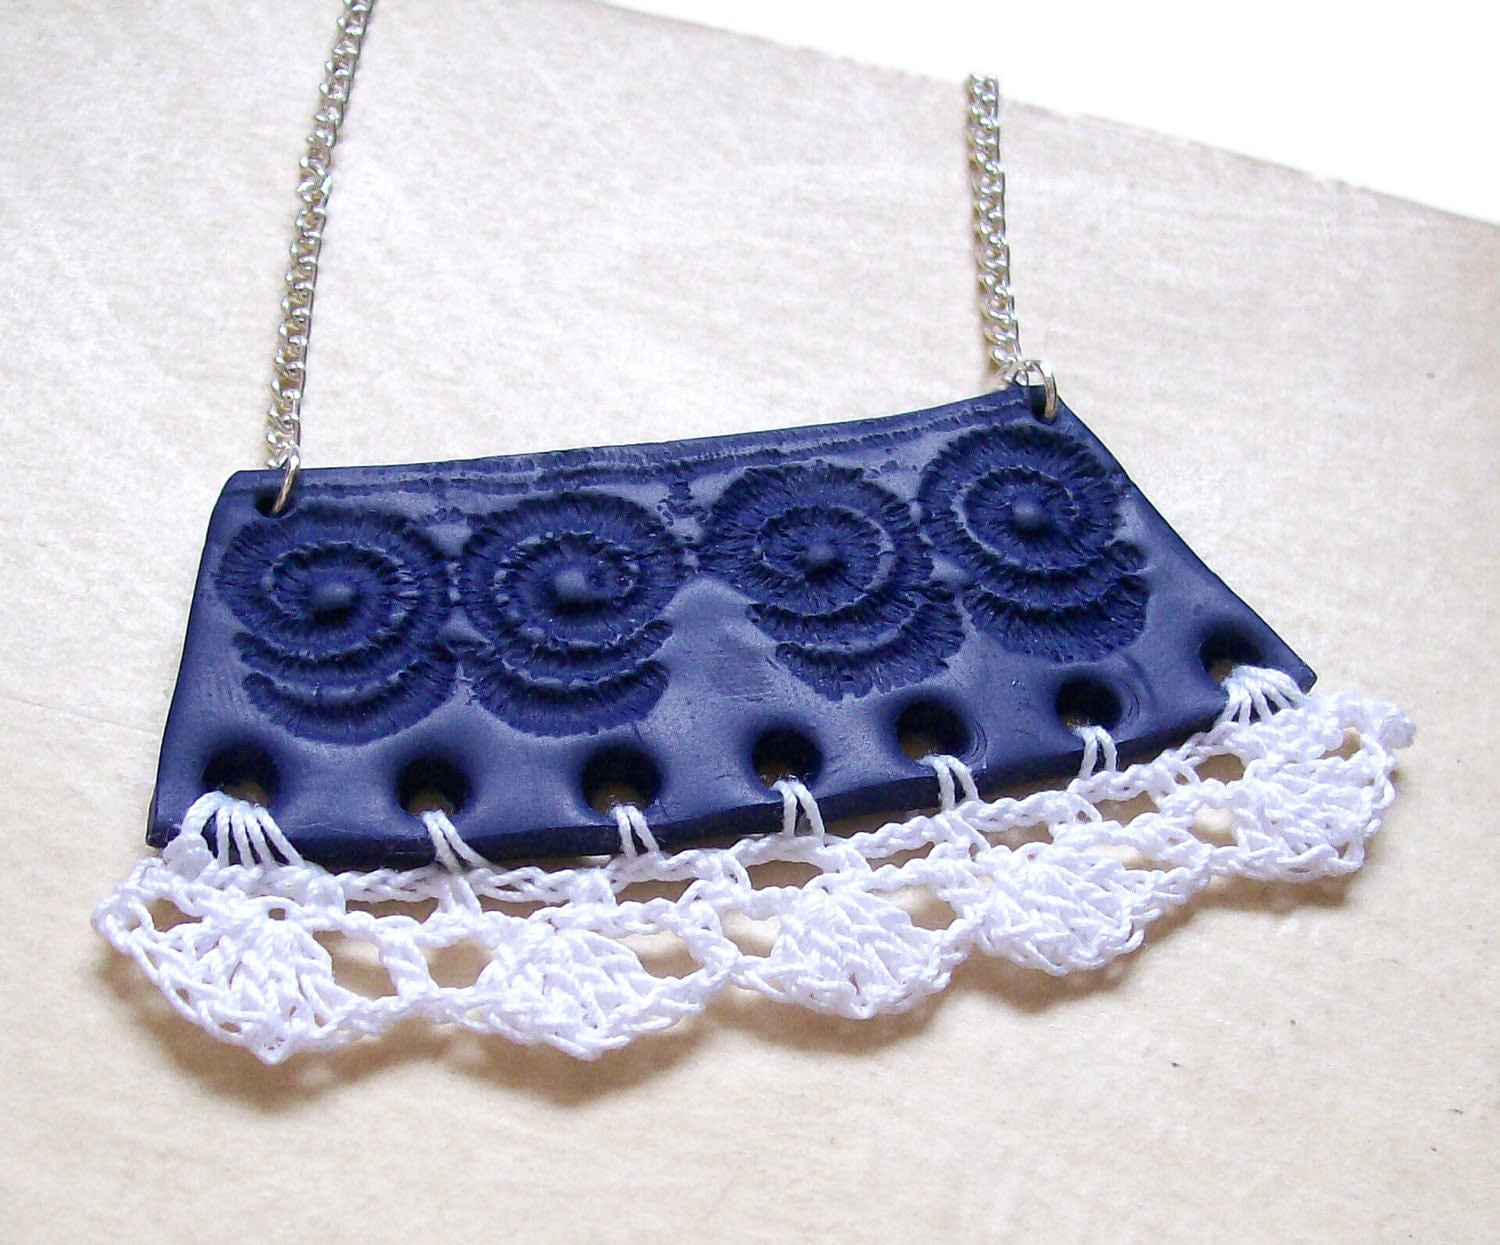 "Crochet clay bib necklace navy blue white fashion necklace nautical lace crochet frill polymer clay necklace ""The Collar Blue"" one-of-a-kind - HunkiiDorii"